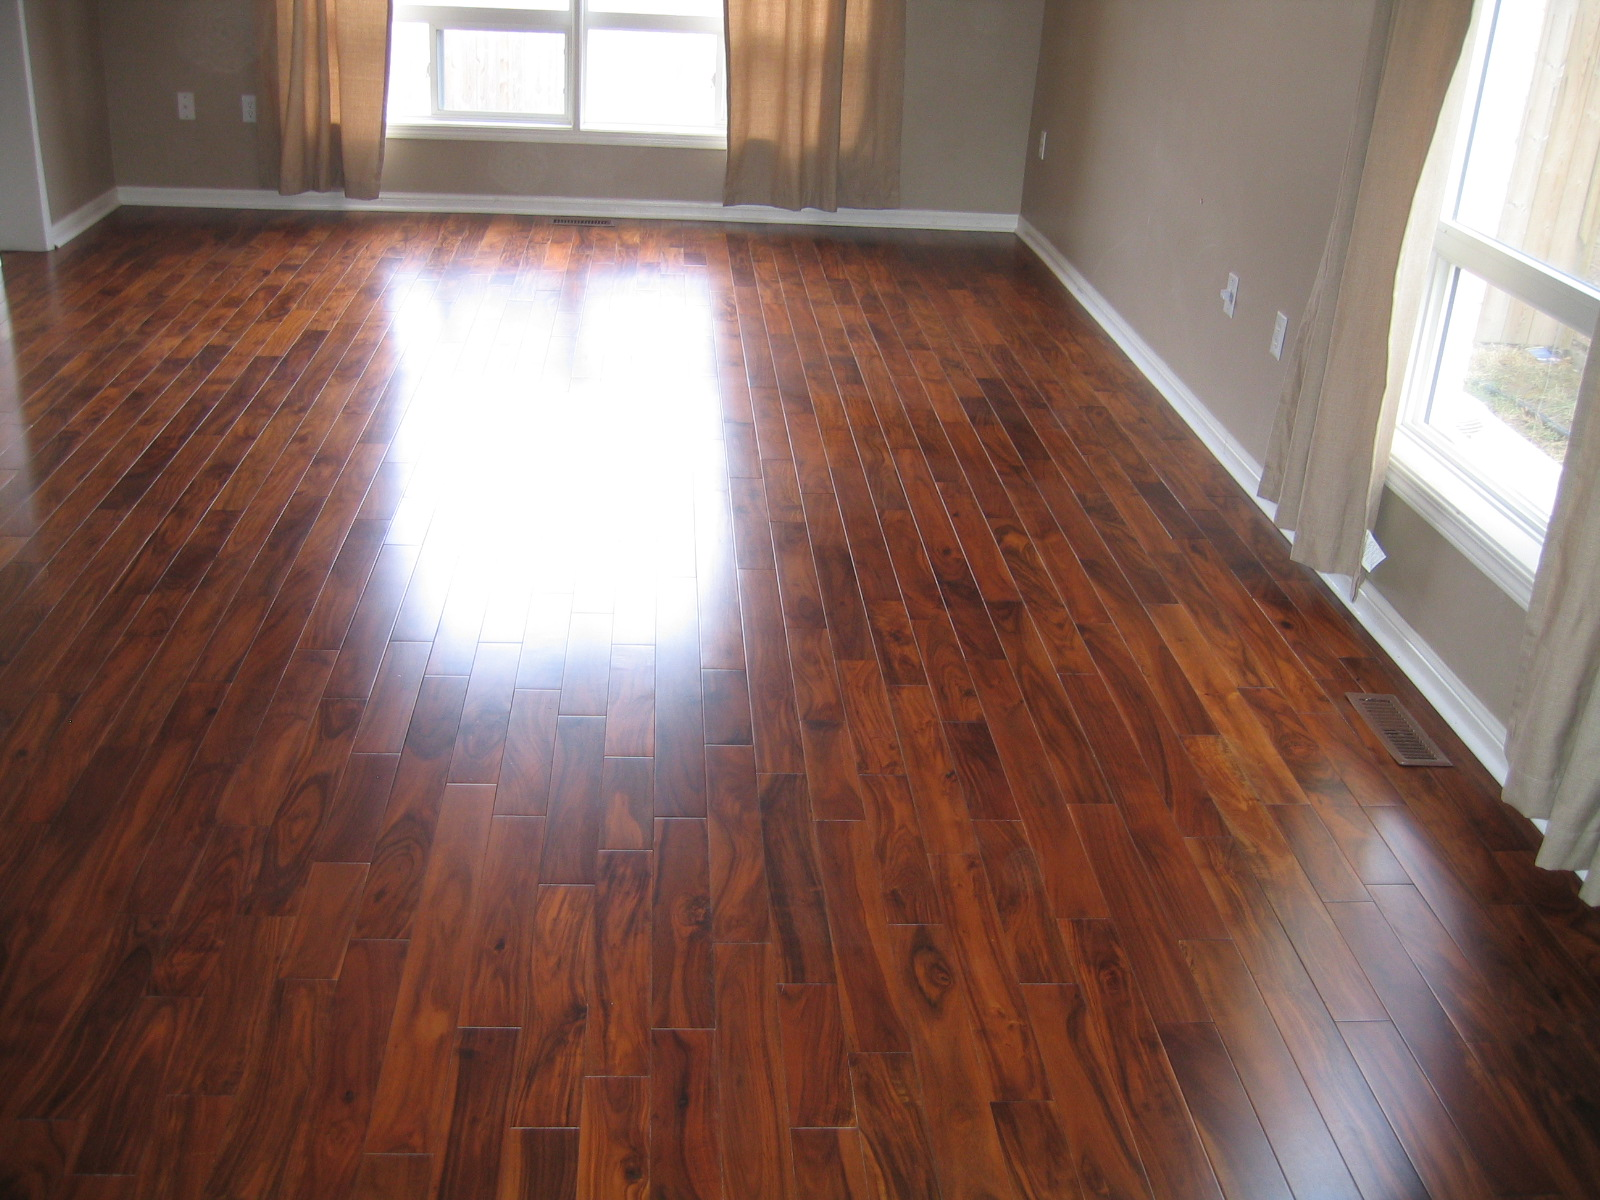 Bamboo hardwood floor installation dartex contracting Wood floor installer